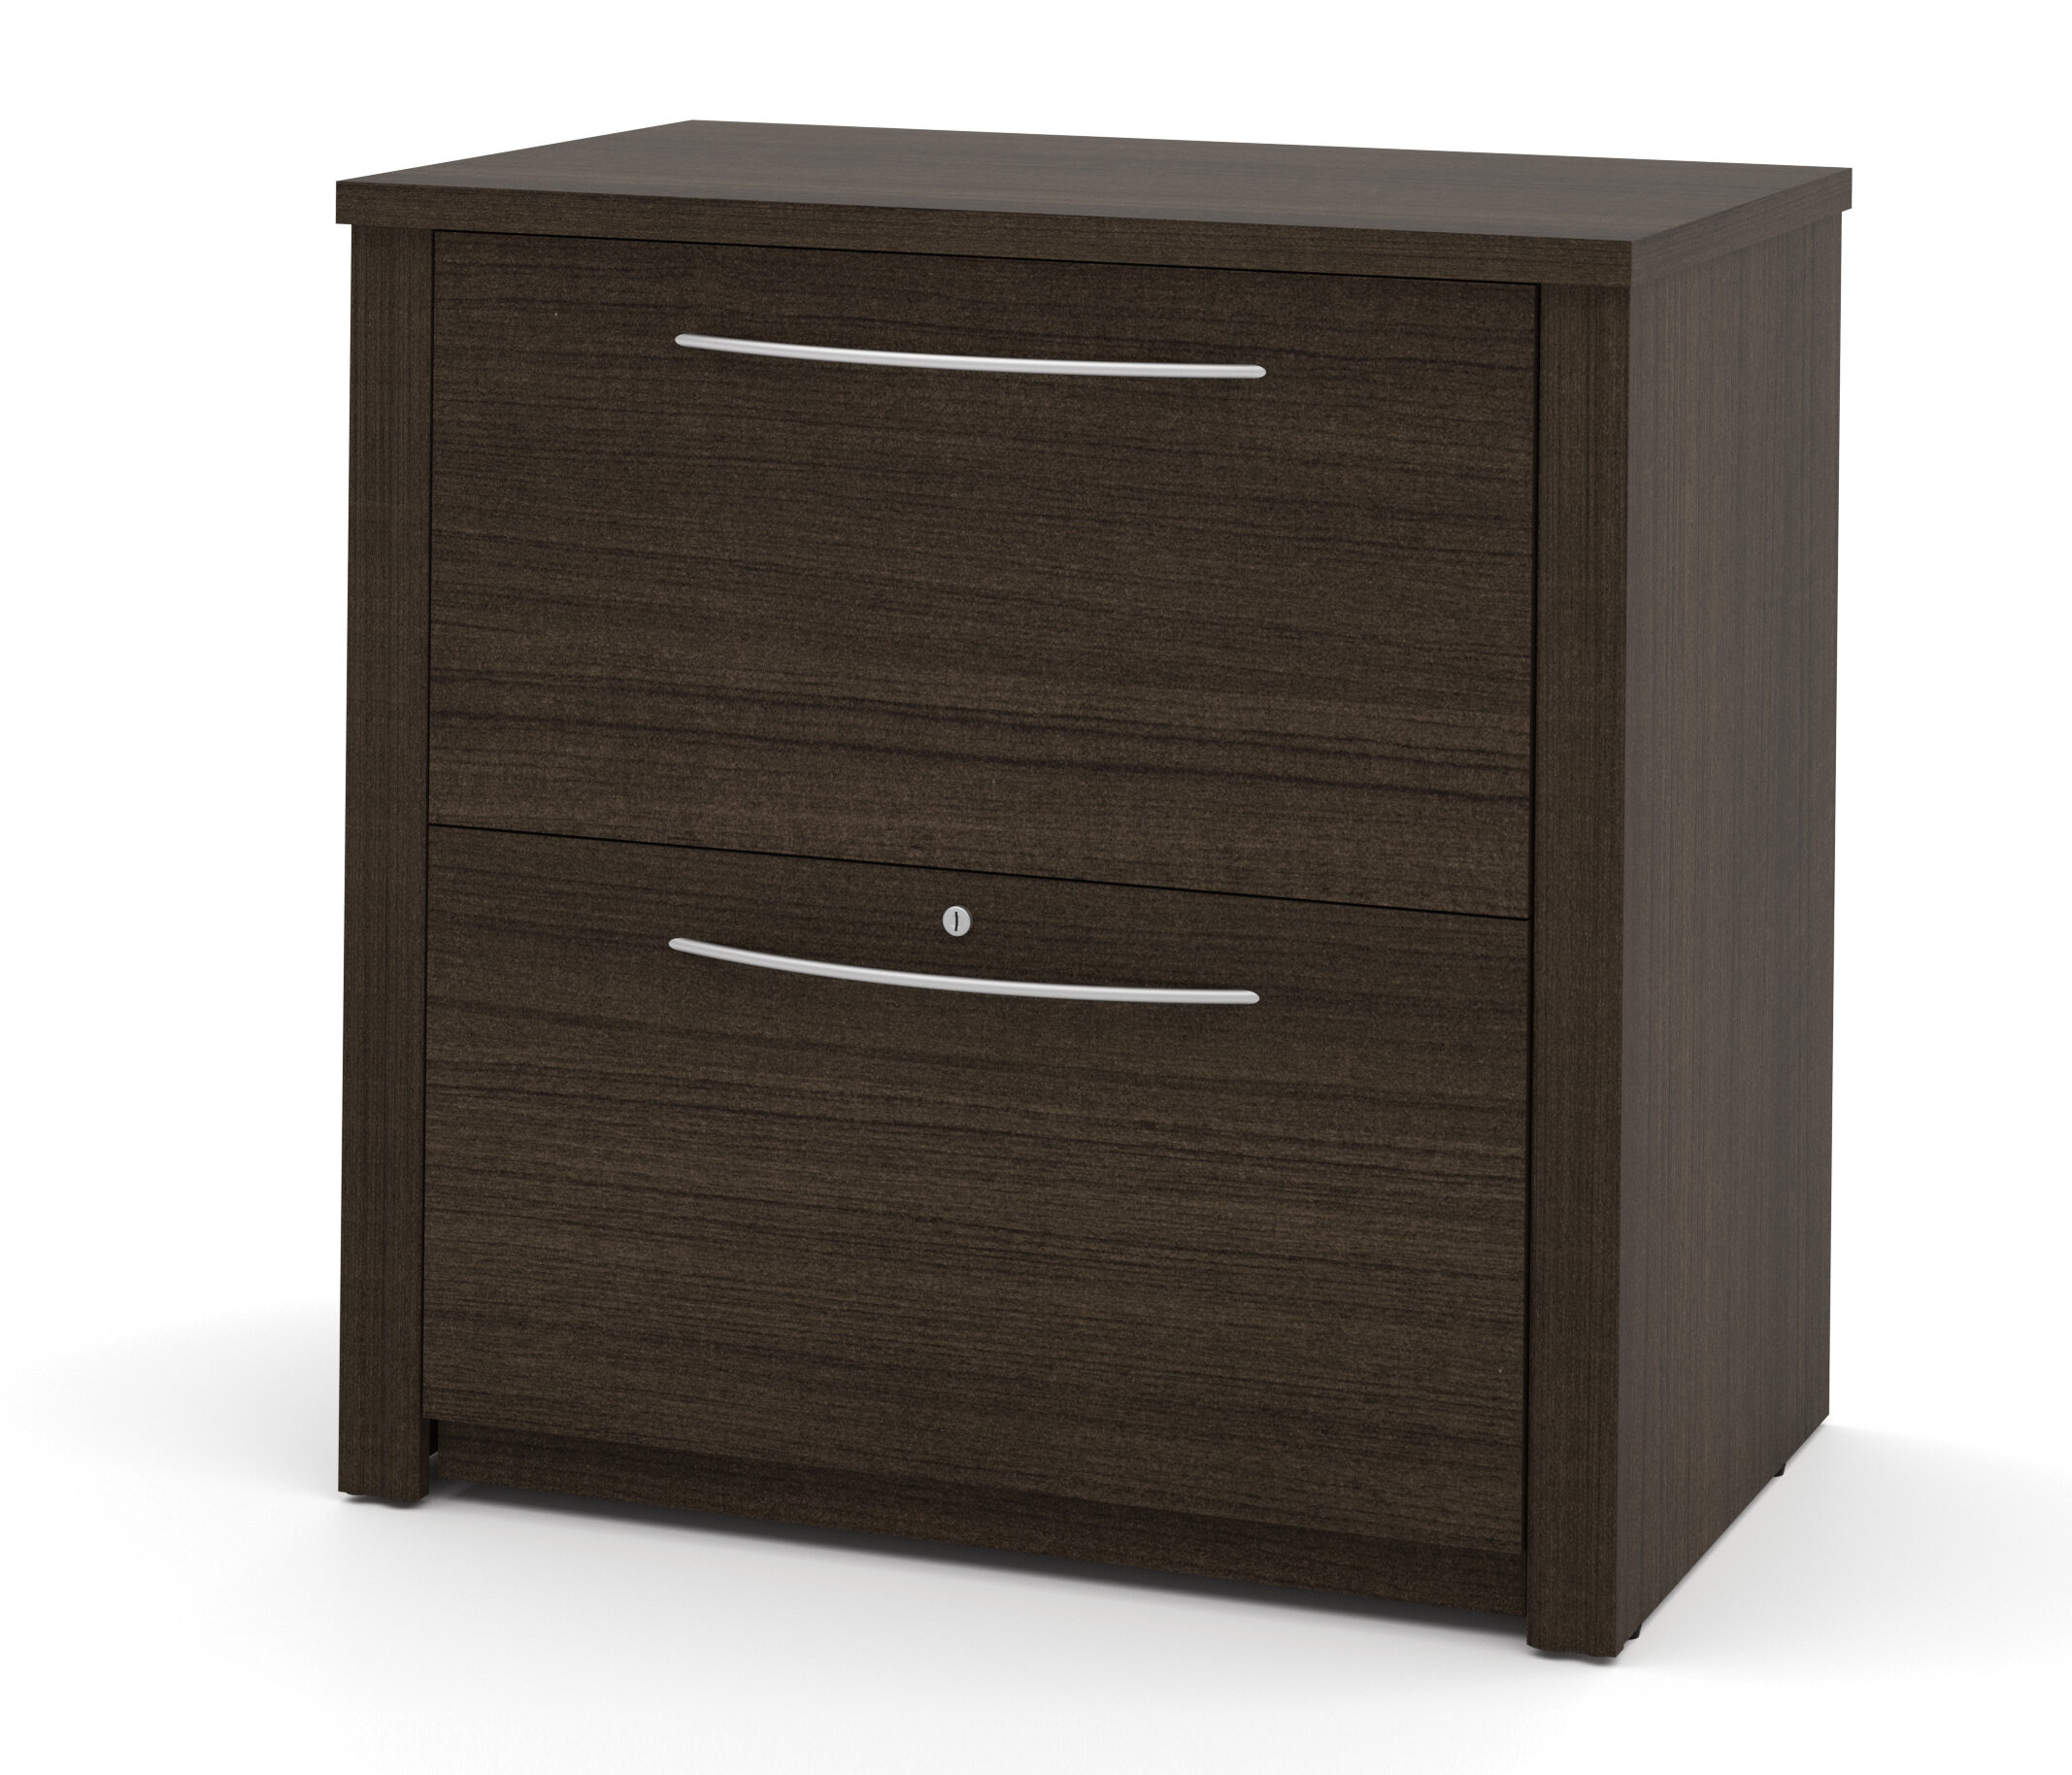 p black dorel filing prod drawer spin file furnishings qlt ash core cabinet wid home ebony hei two